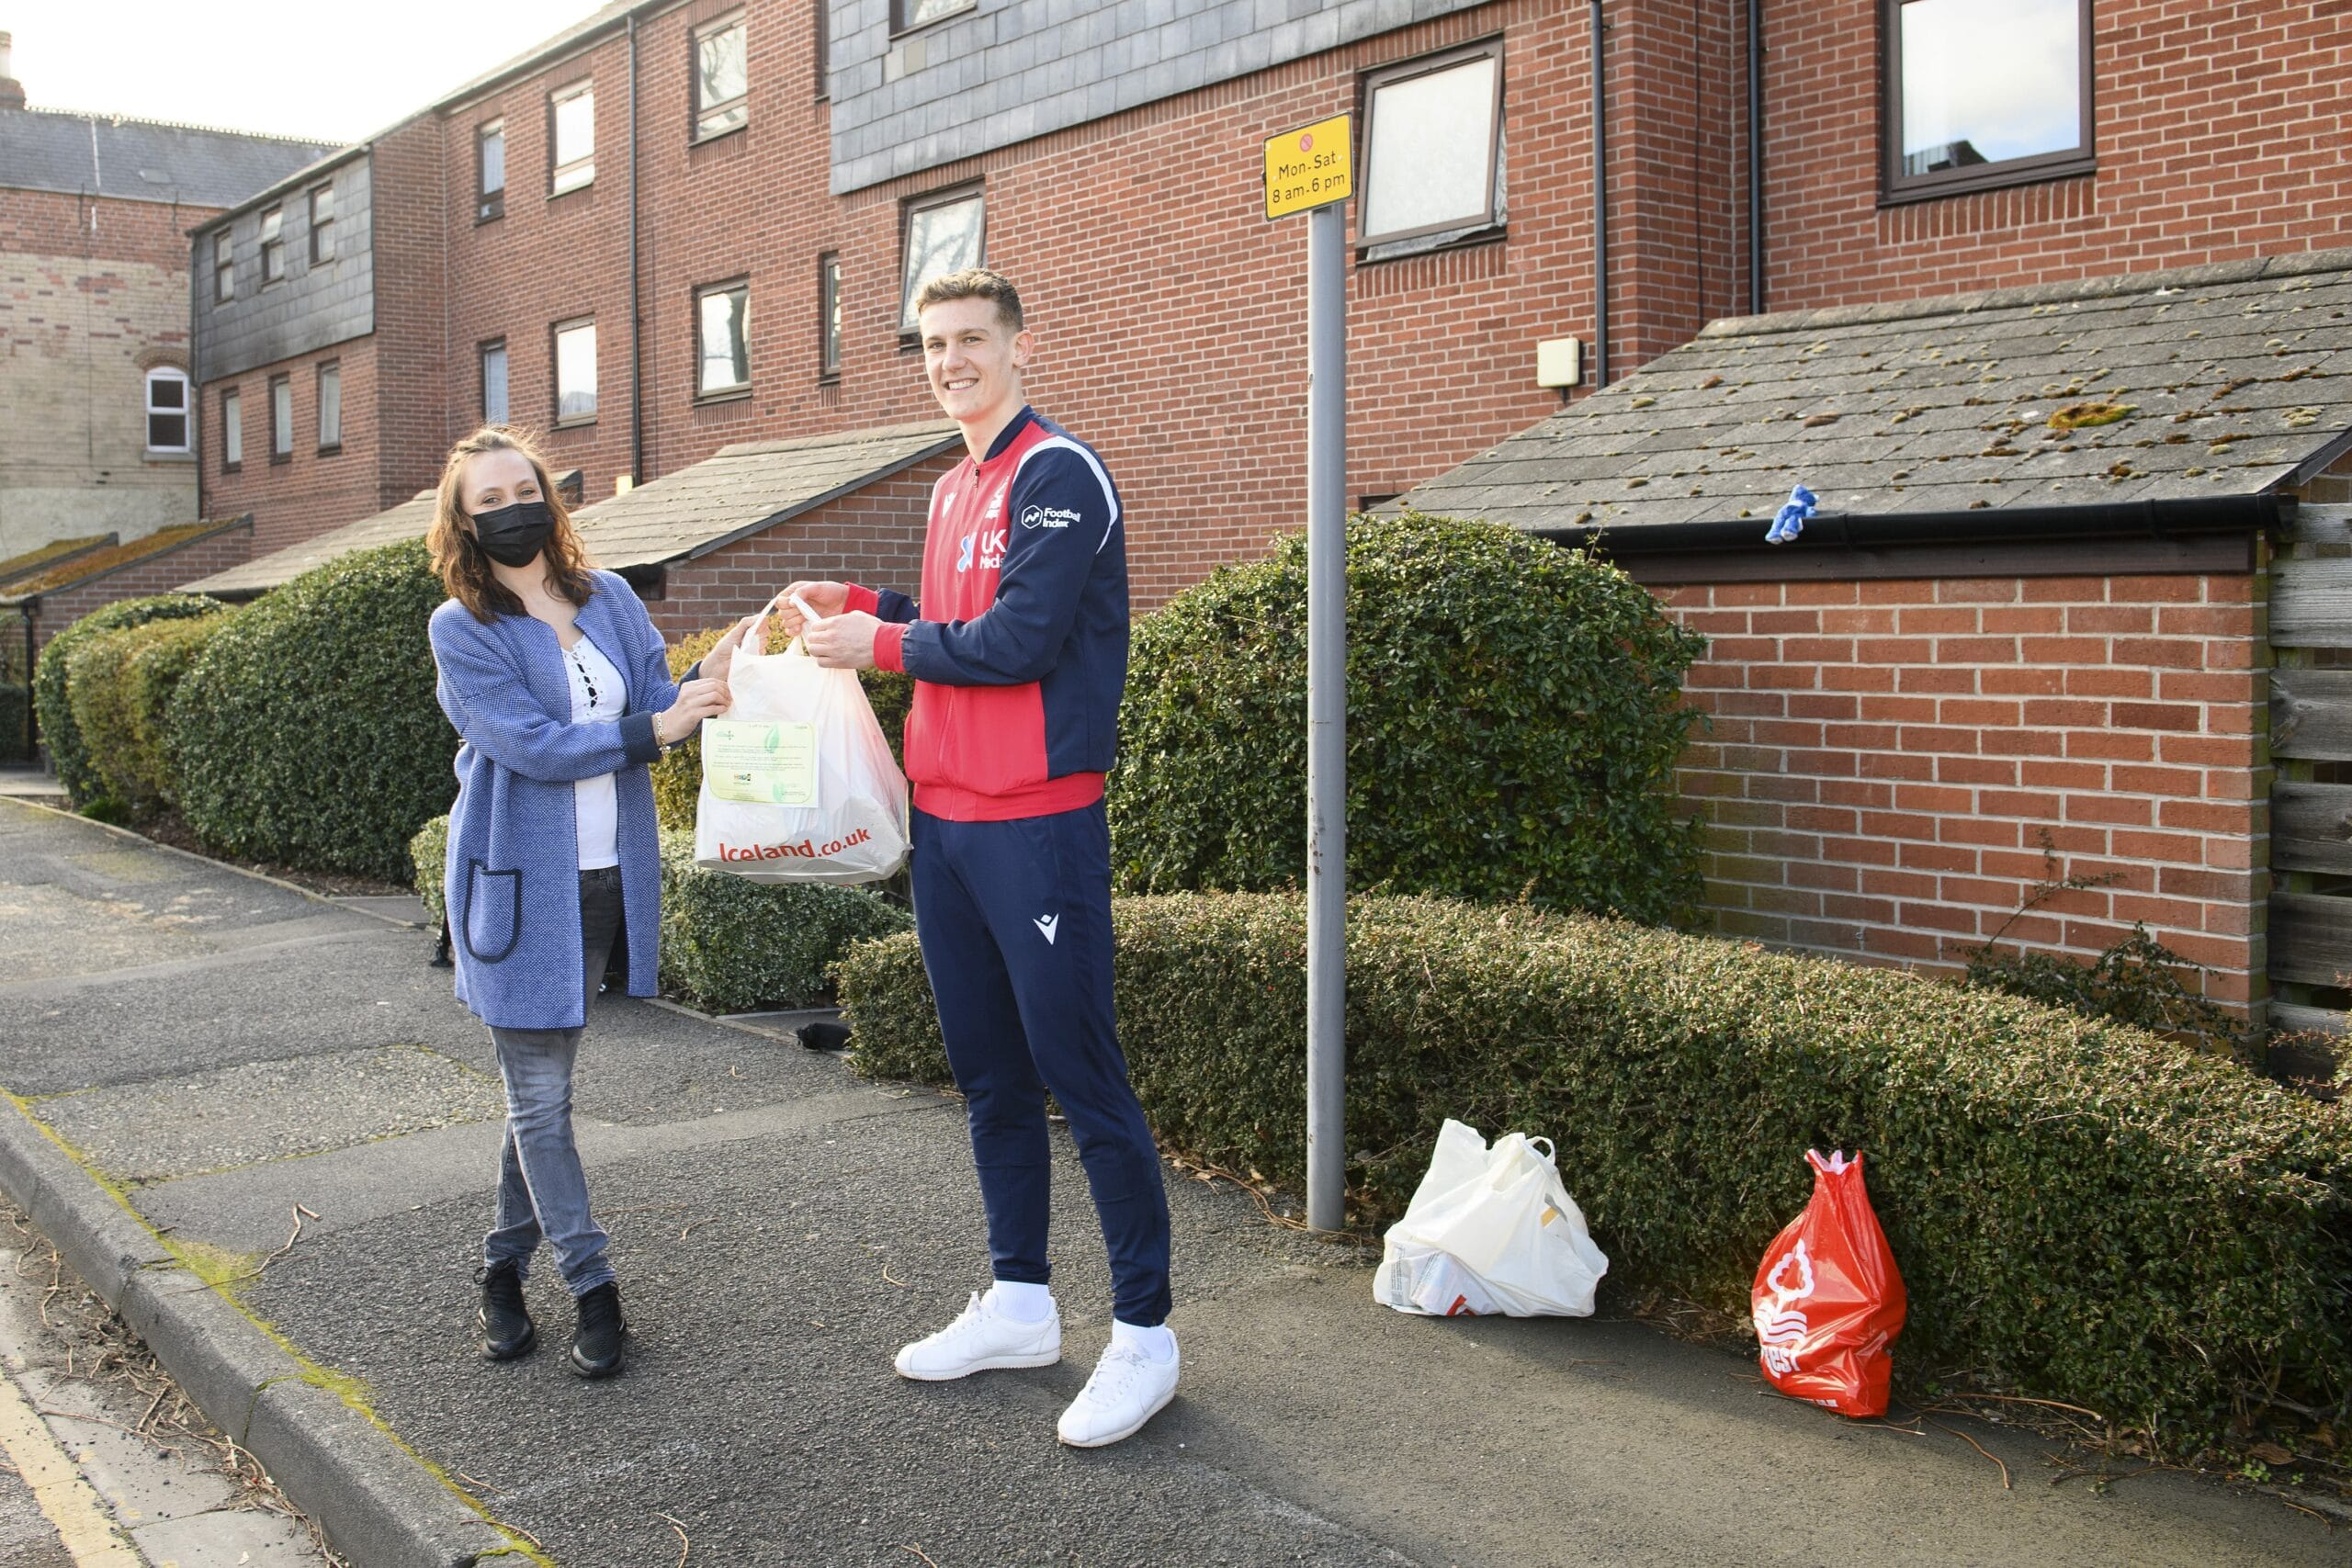 Nottingham Forests Ryan Yates gives food parcel to local resident. This is the one millionth food parcel delivered by EFL Clubs scaled